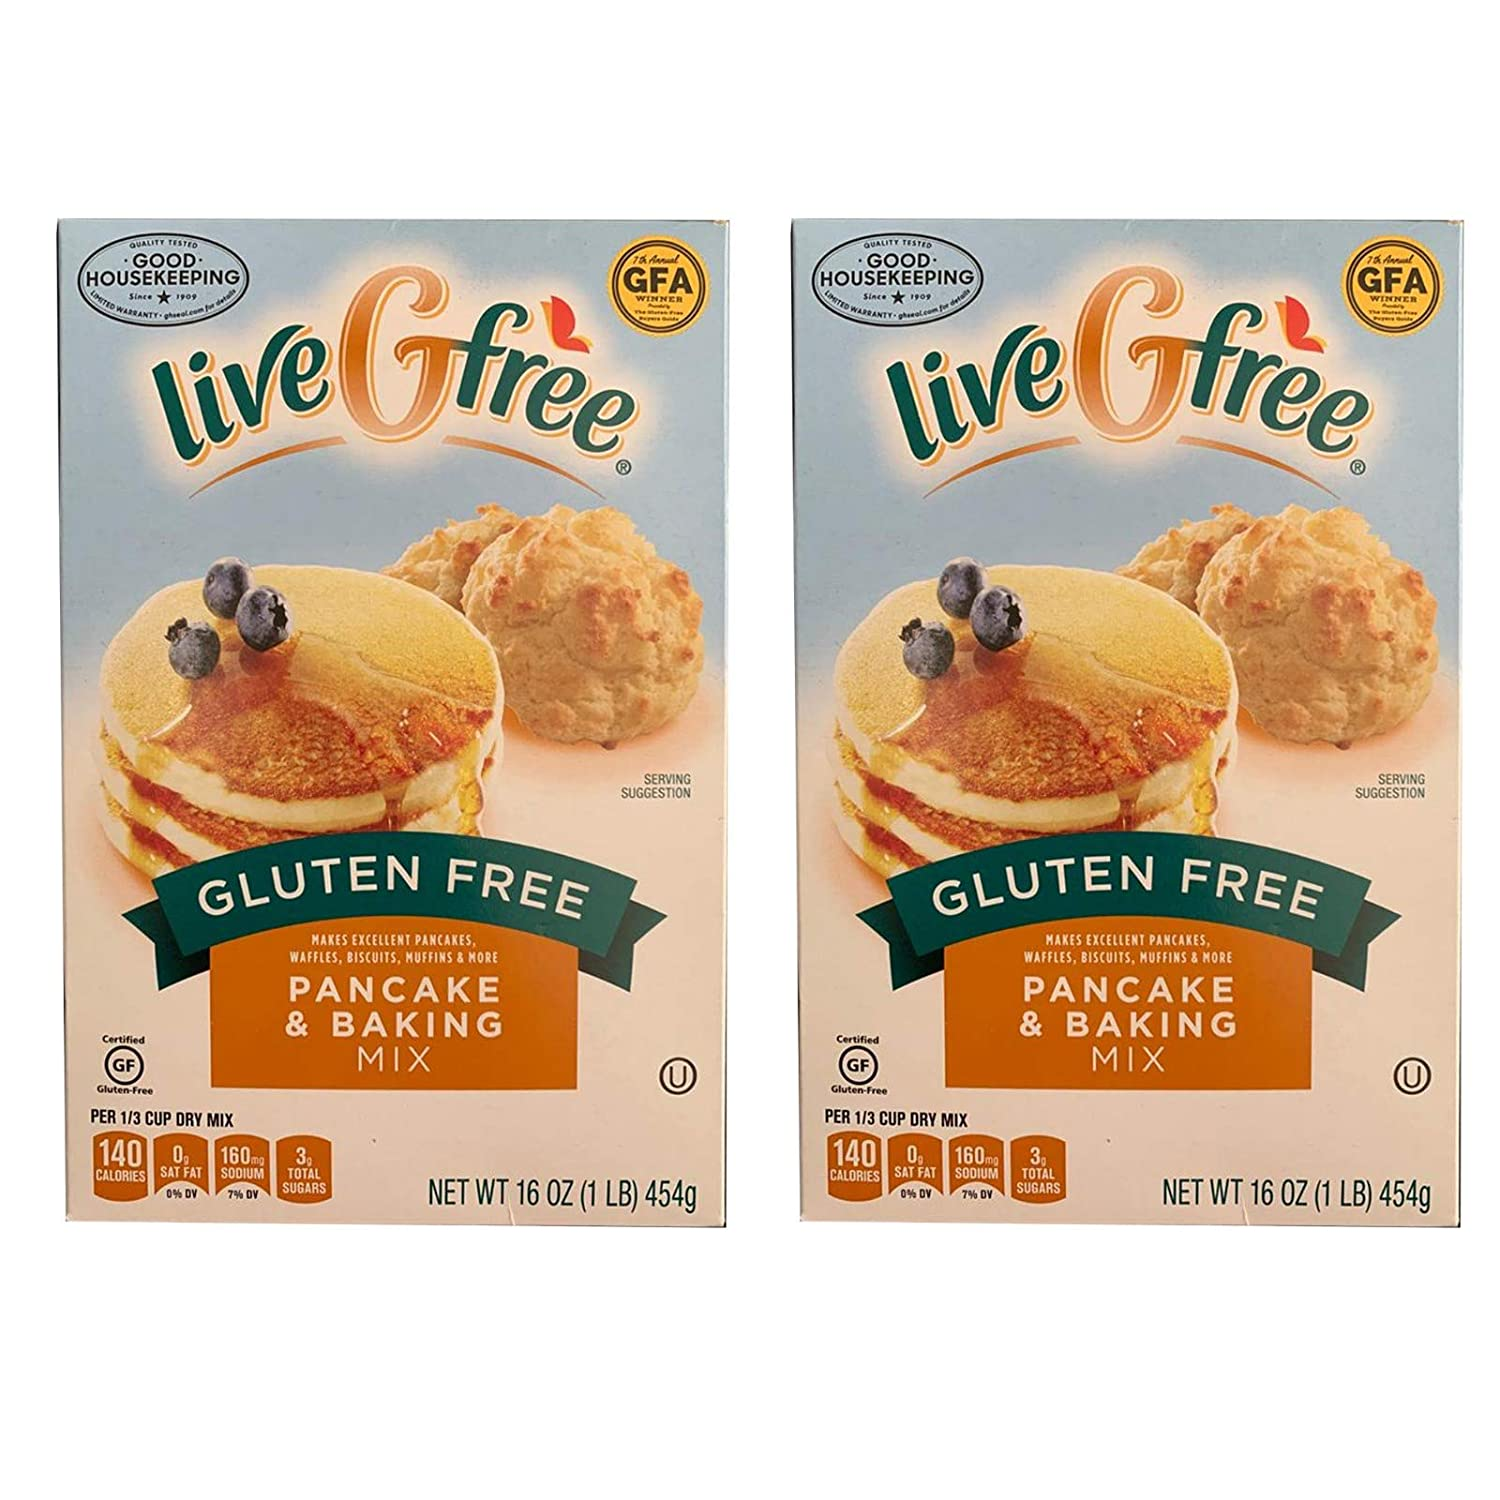 Gluten Free Baking Mix By Live G Free 2-pack